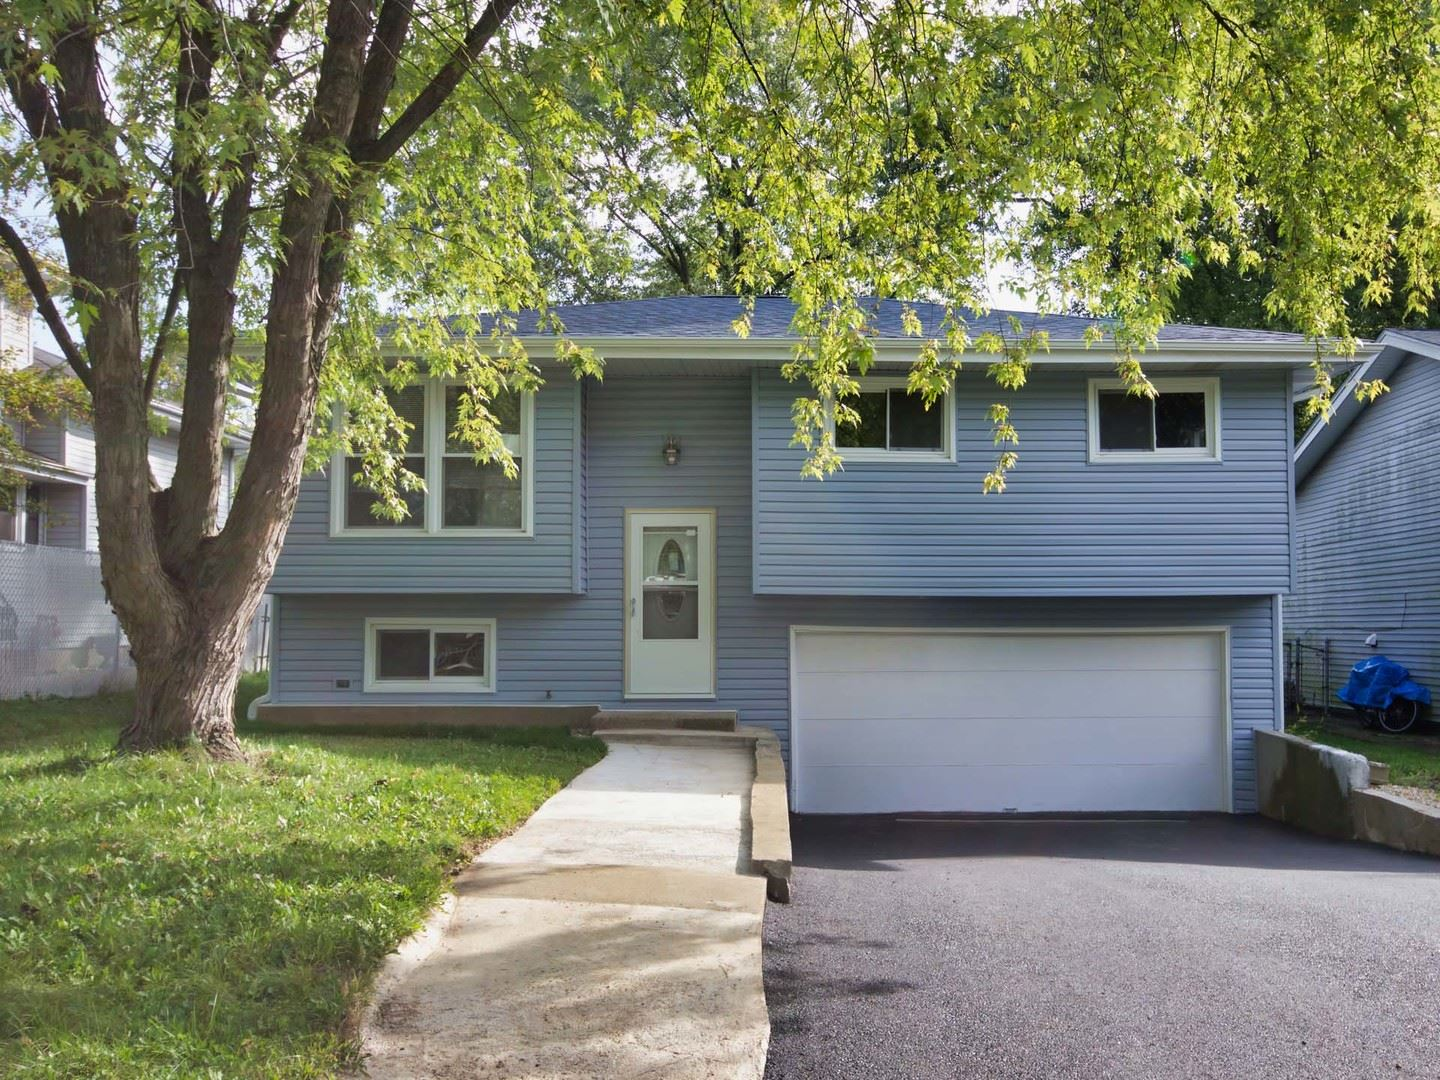 0N067 Cottonwood Drive, Wheaton, IL 60187 - #: 10811127